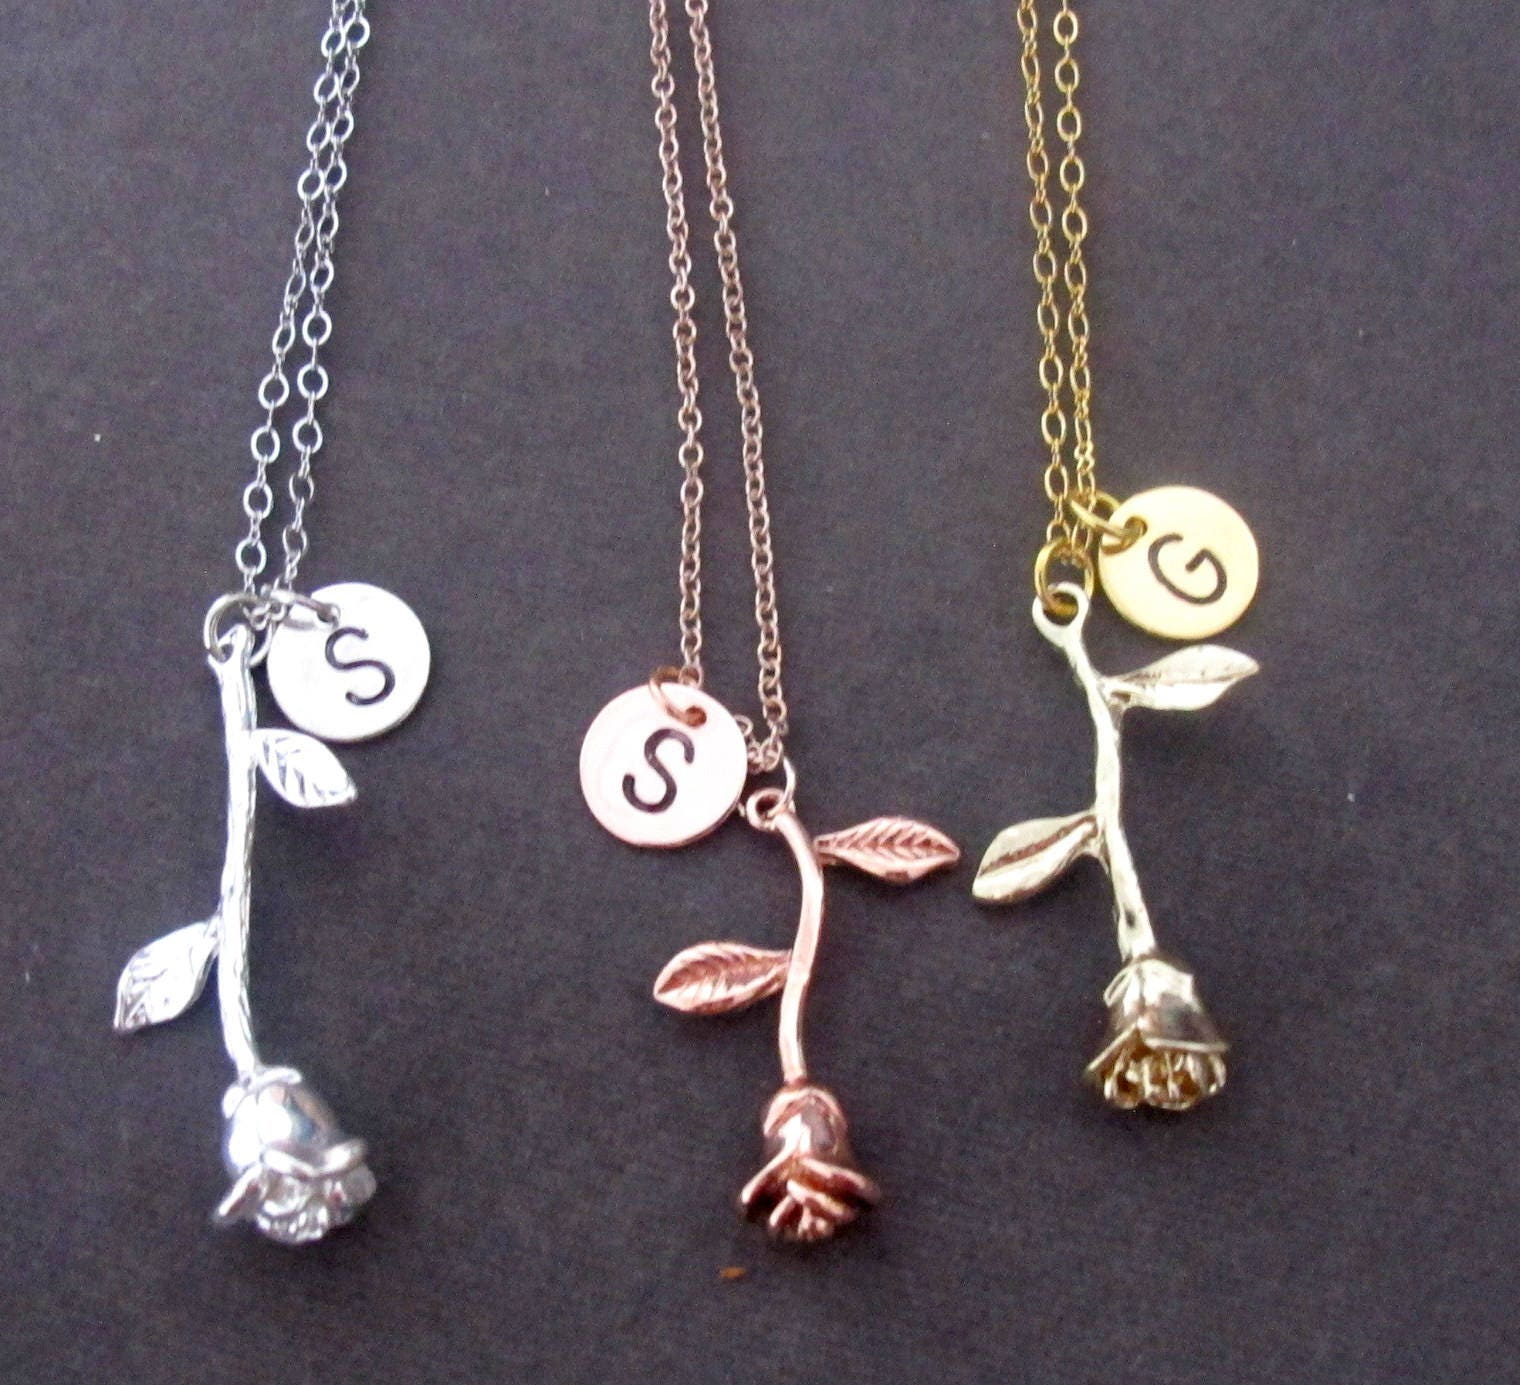 9b17da92a3b6 Rose Necklace Rose Gold Initial Necklace Rose Gold Rose Charm ...